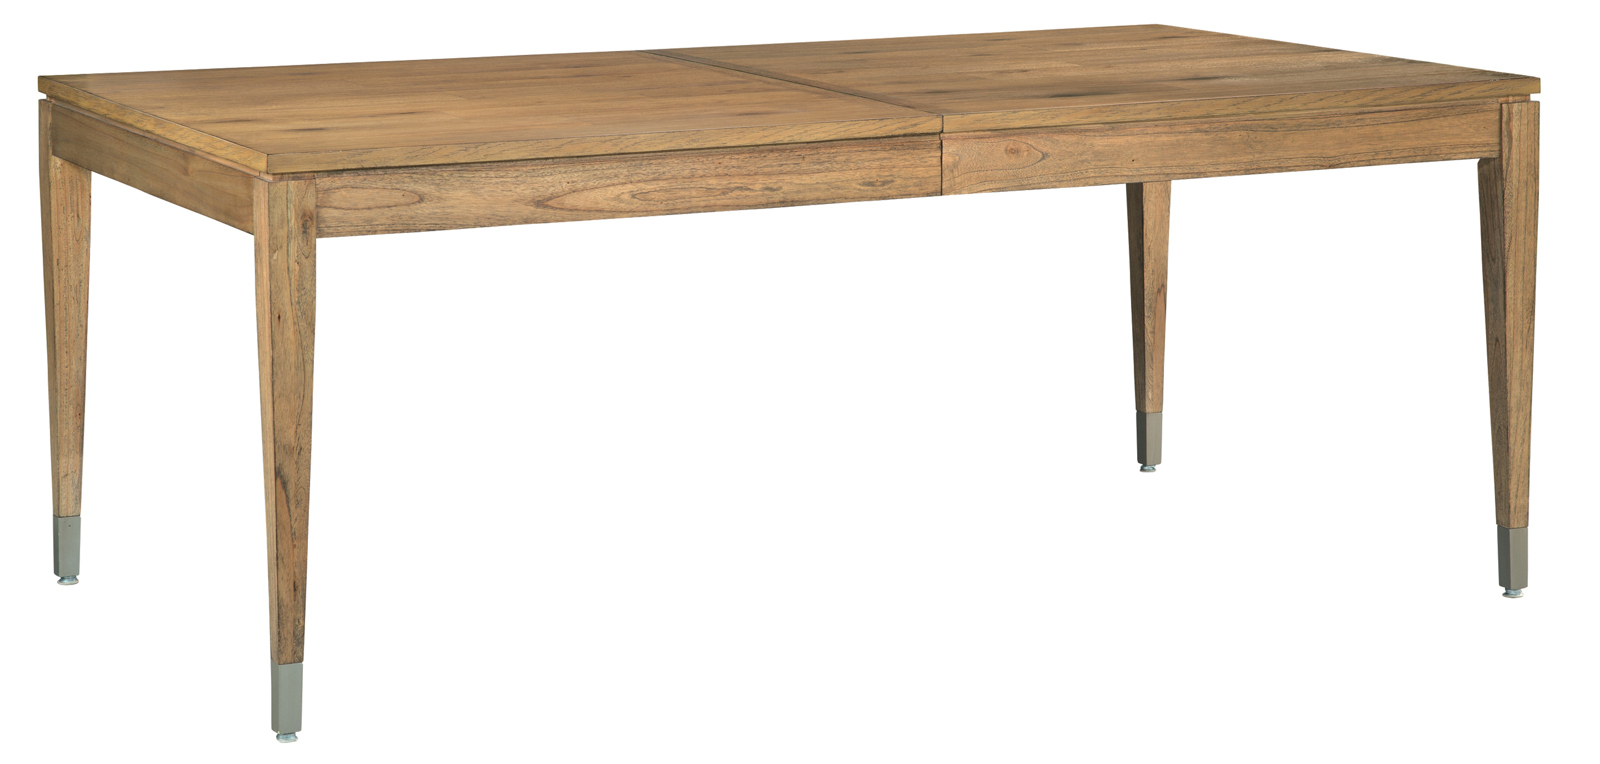 Hekman Avery Park Rectangular Dining Table In Light Brown With Latest Avery Rectangular Dining Tables (View 12 of 25)